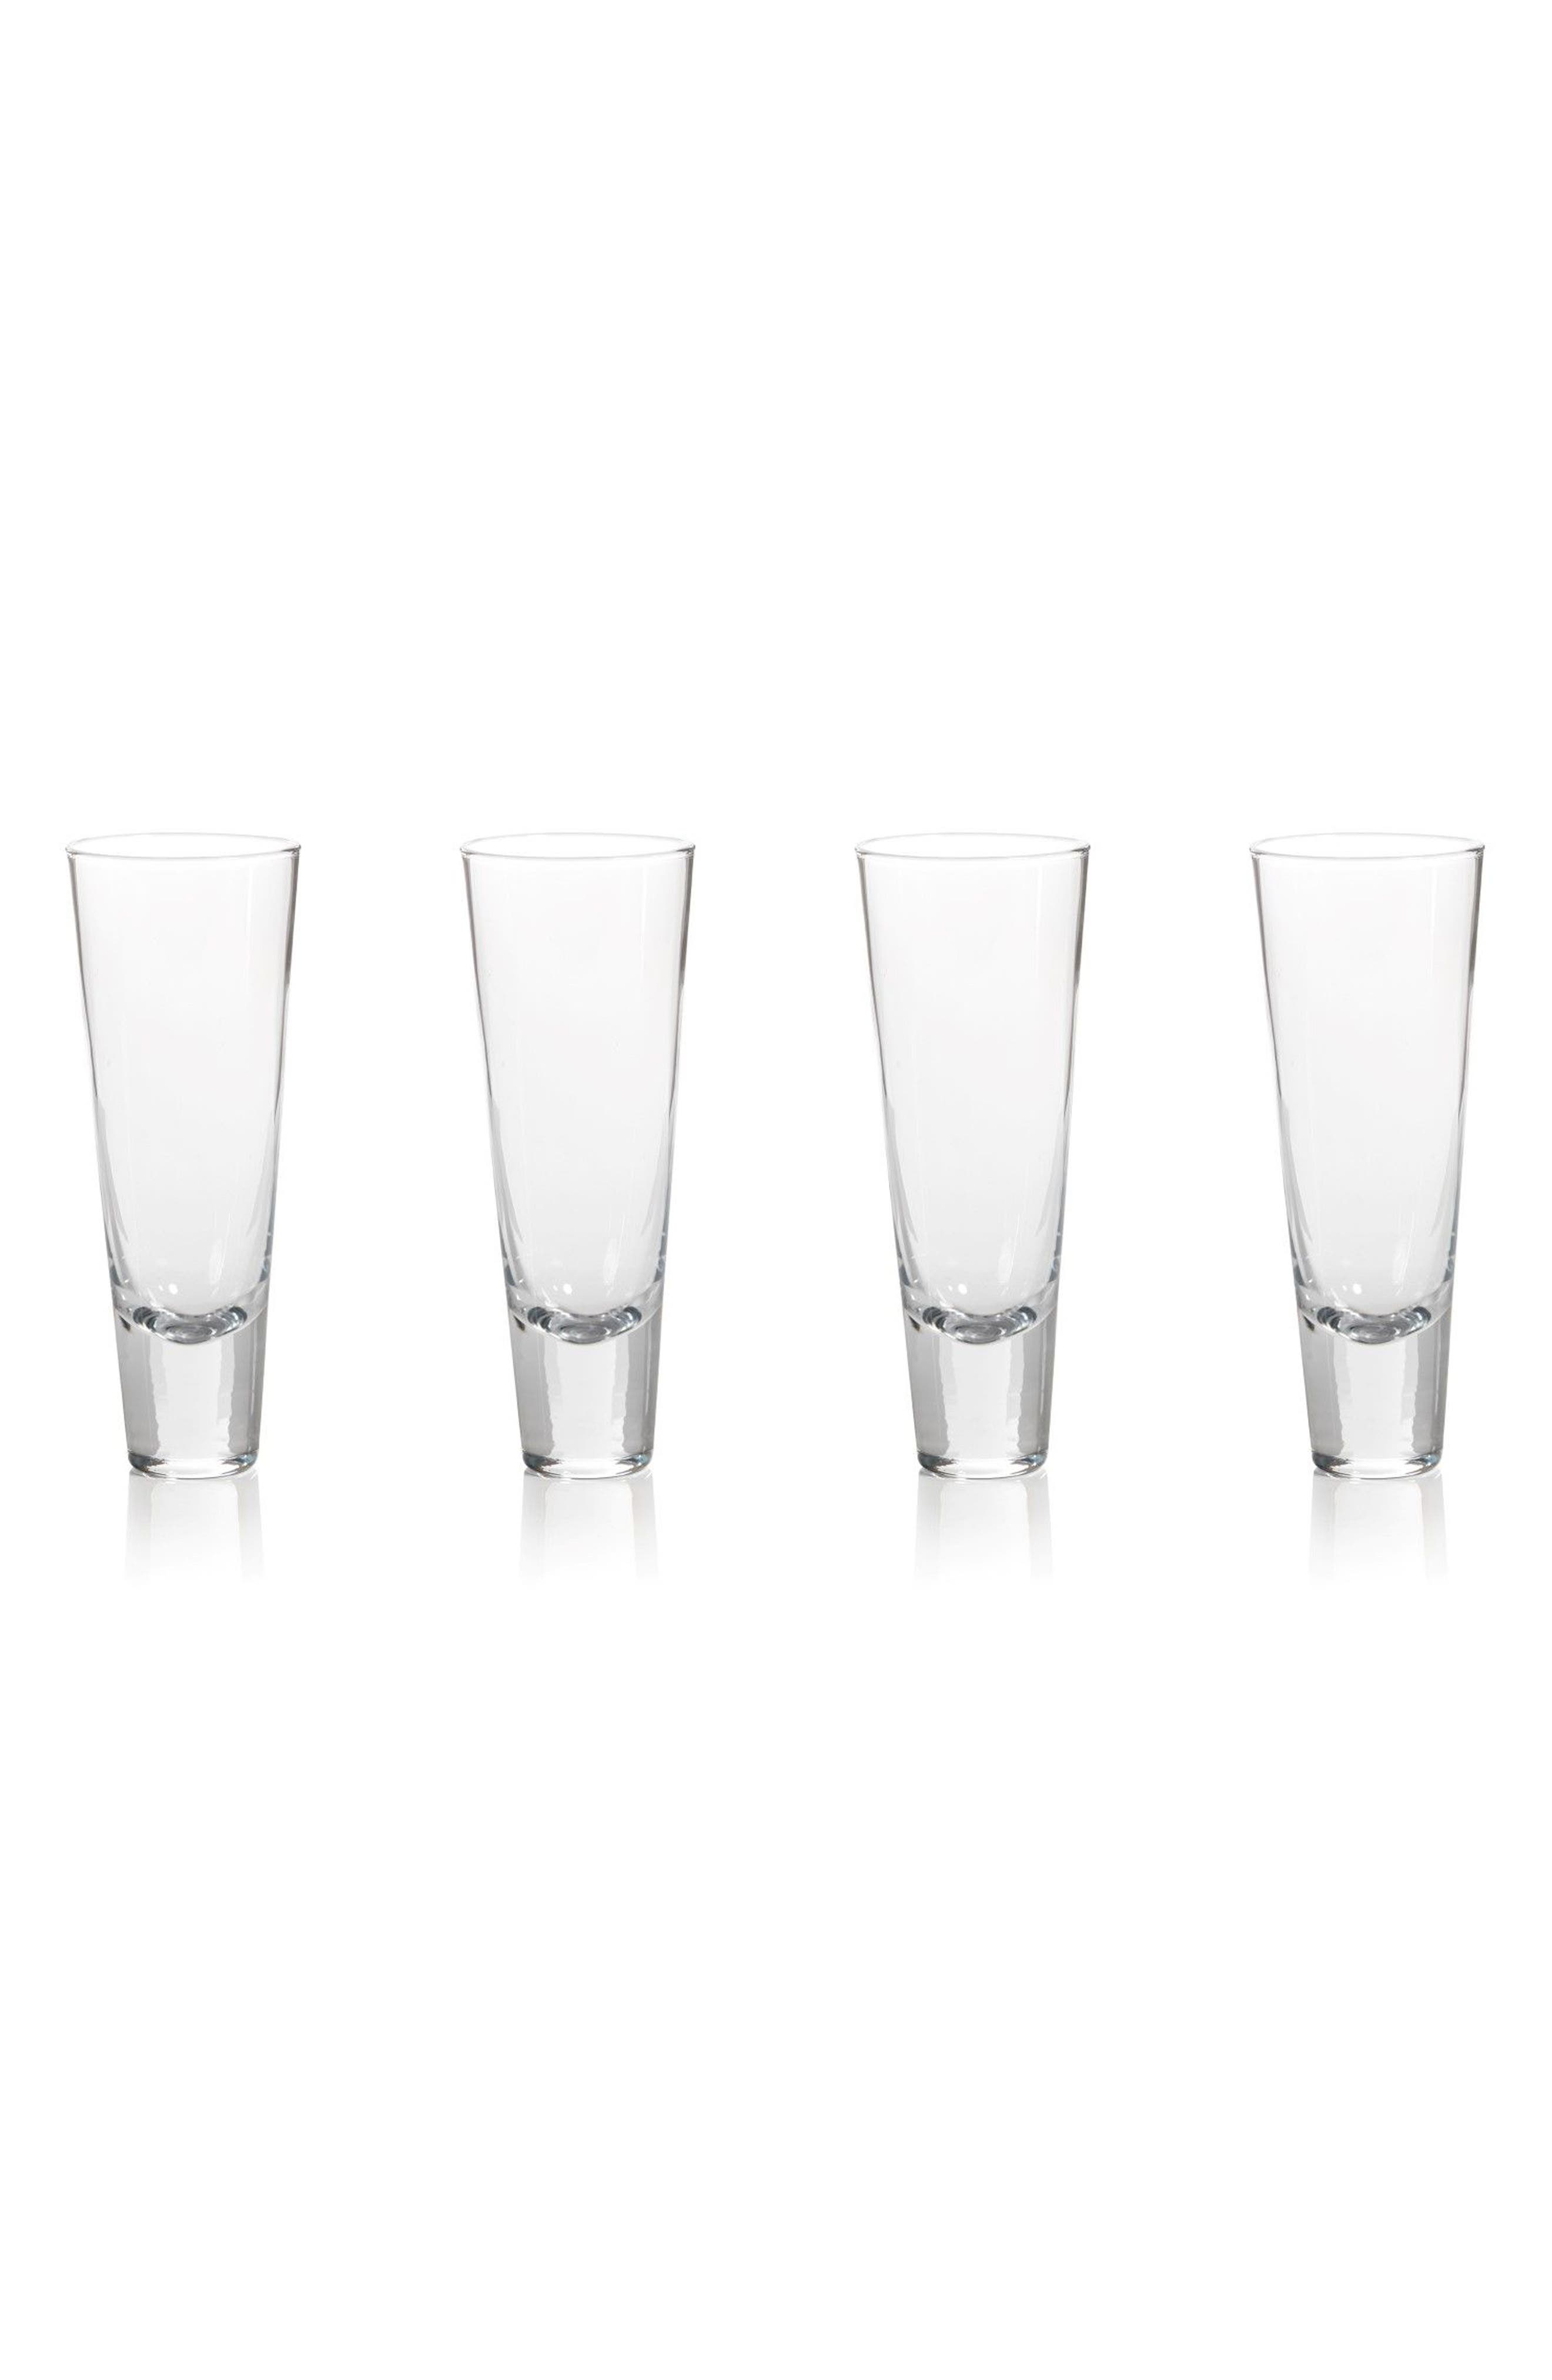 Anatole Set of 4 Tapered Glasses,                             Main thumbnail 1, color,                             100